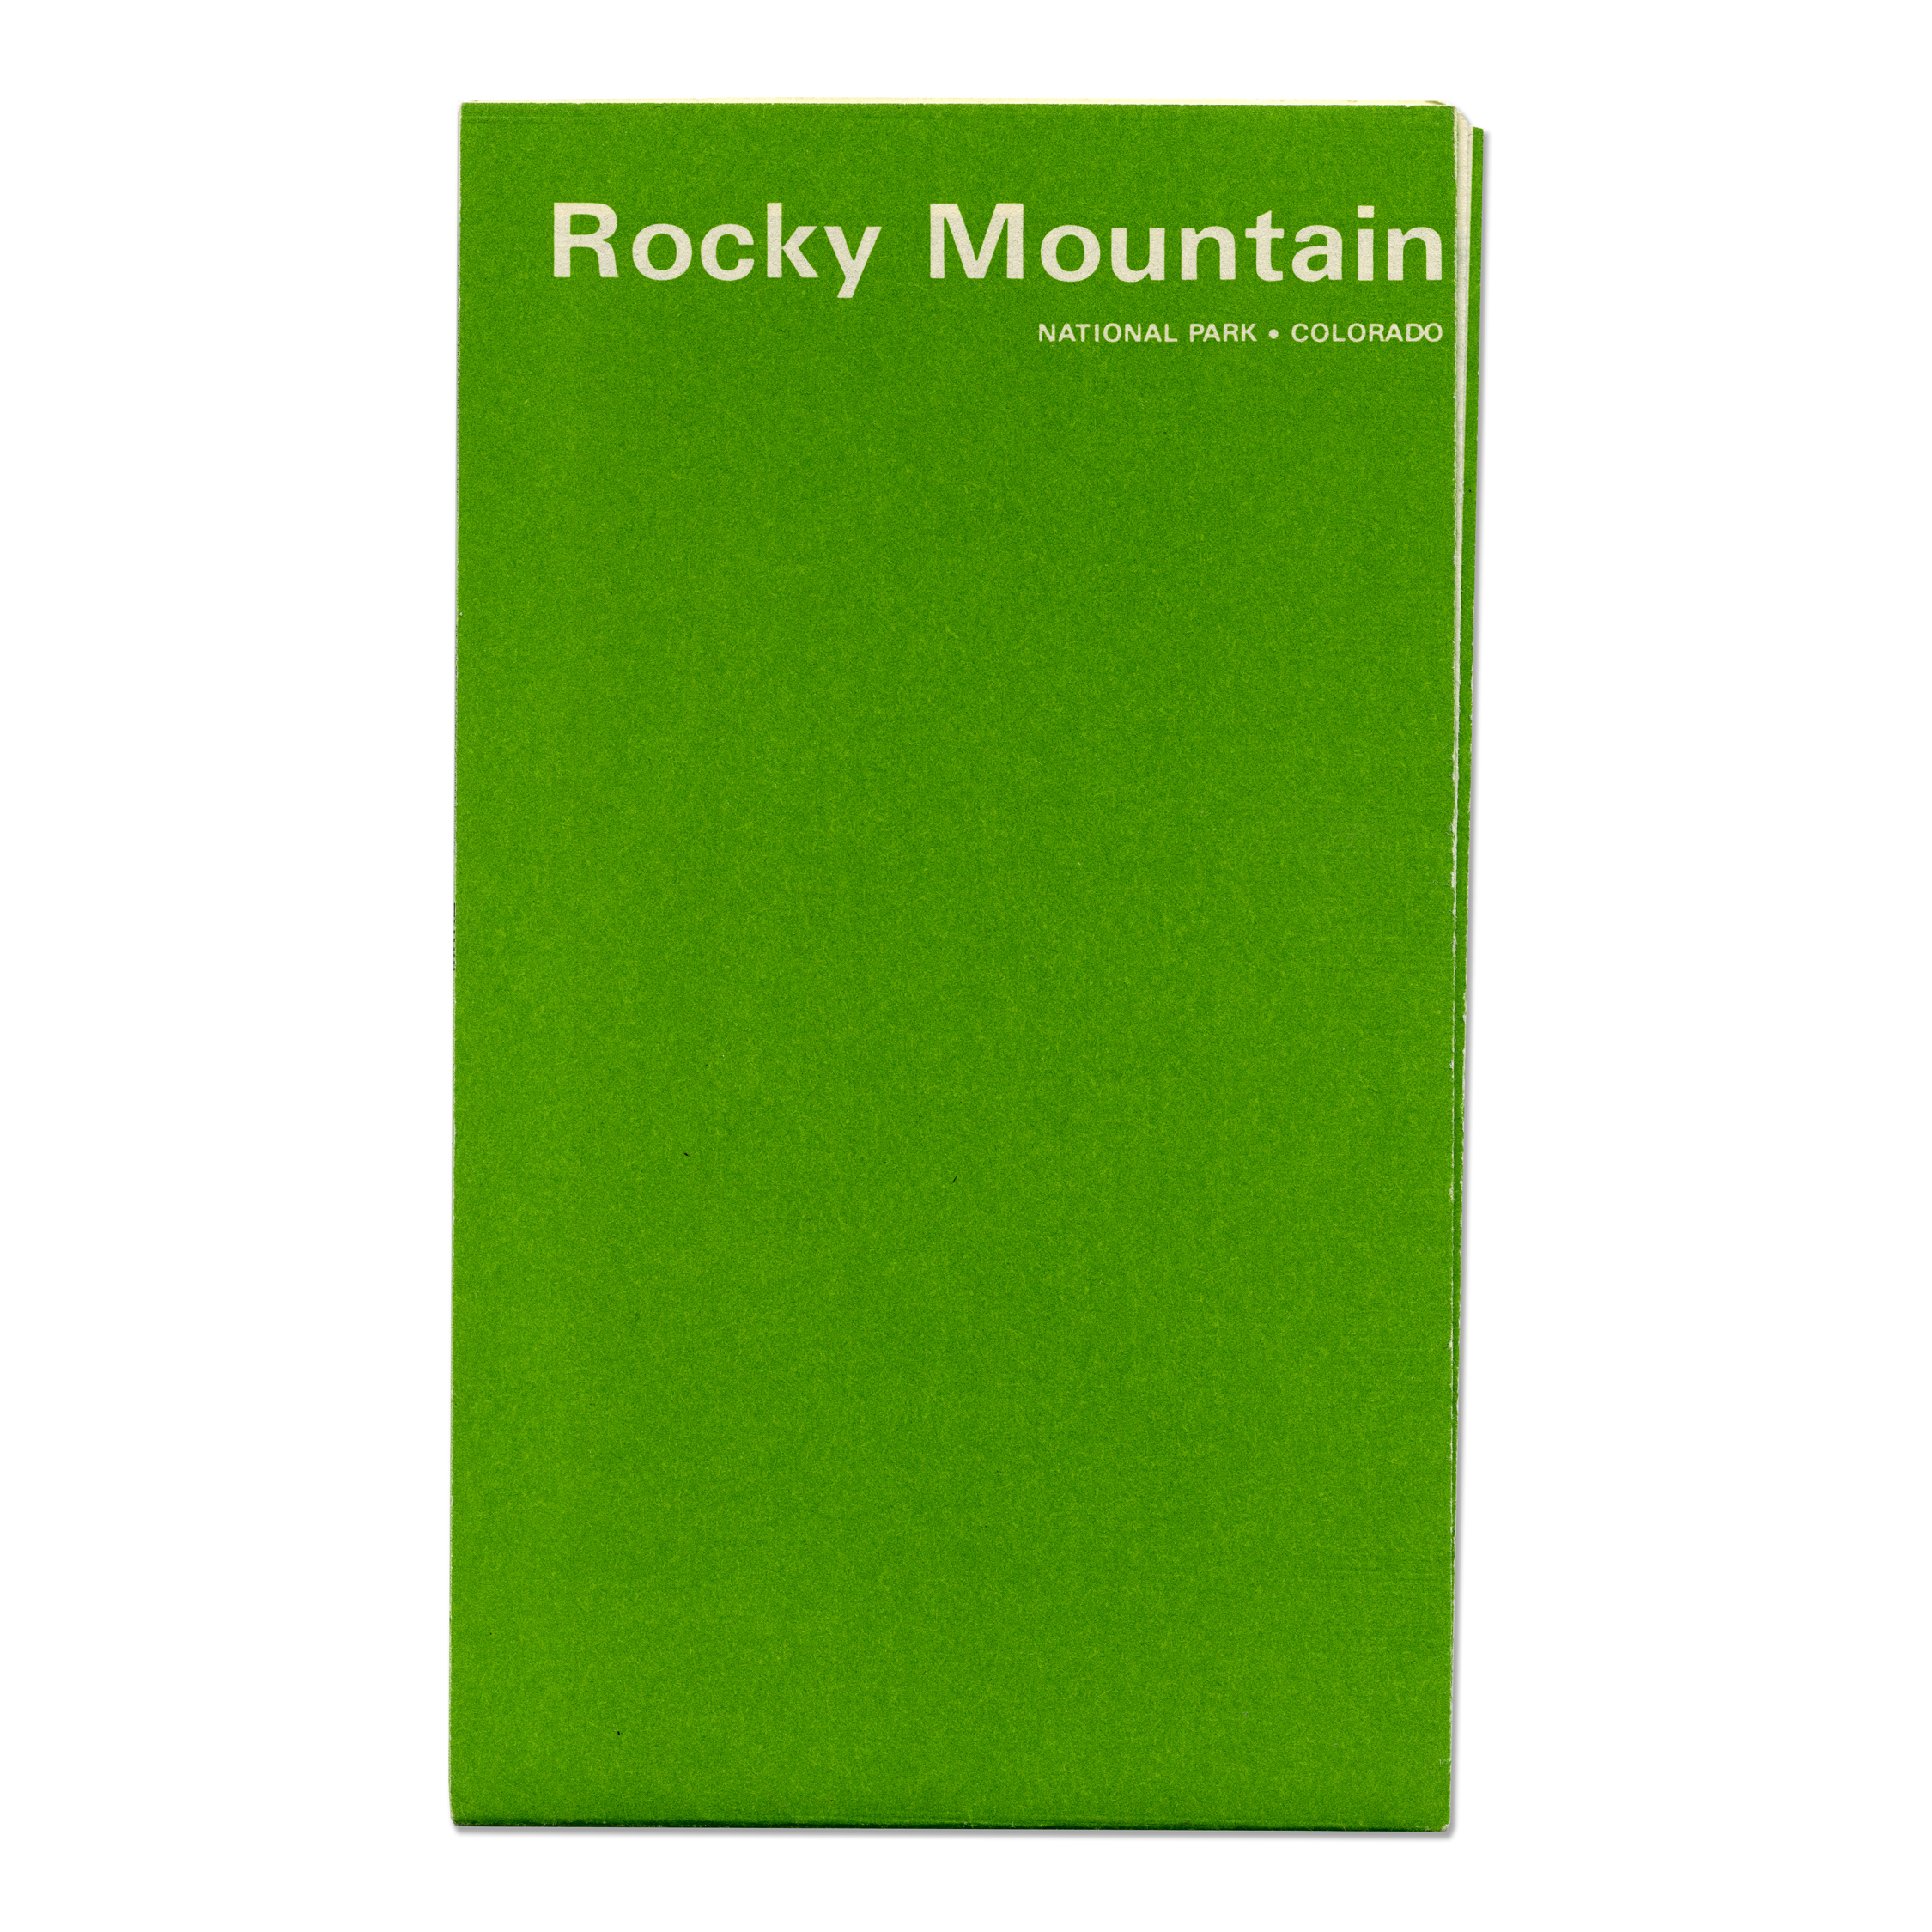 1968_rocky_mountain_national_park_brochure.jpg